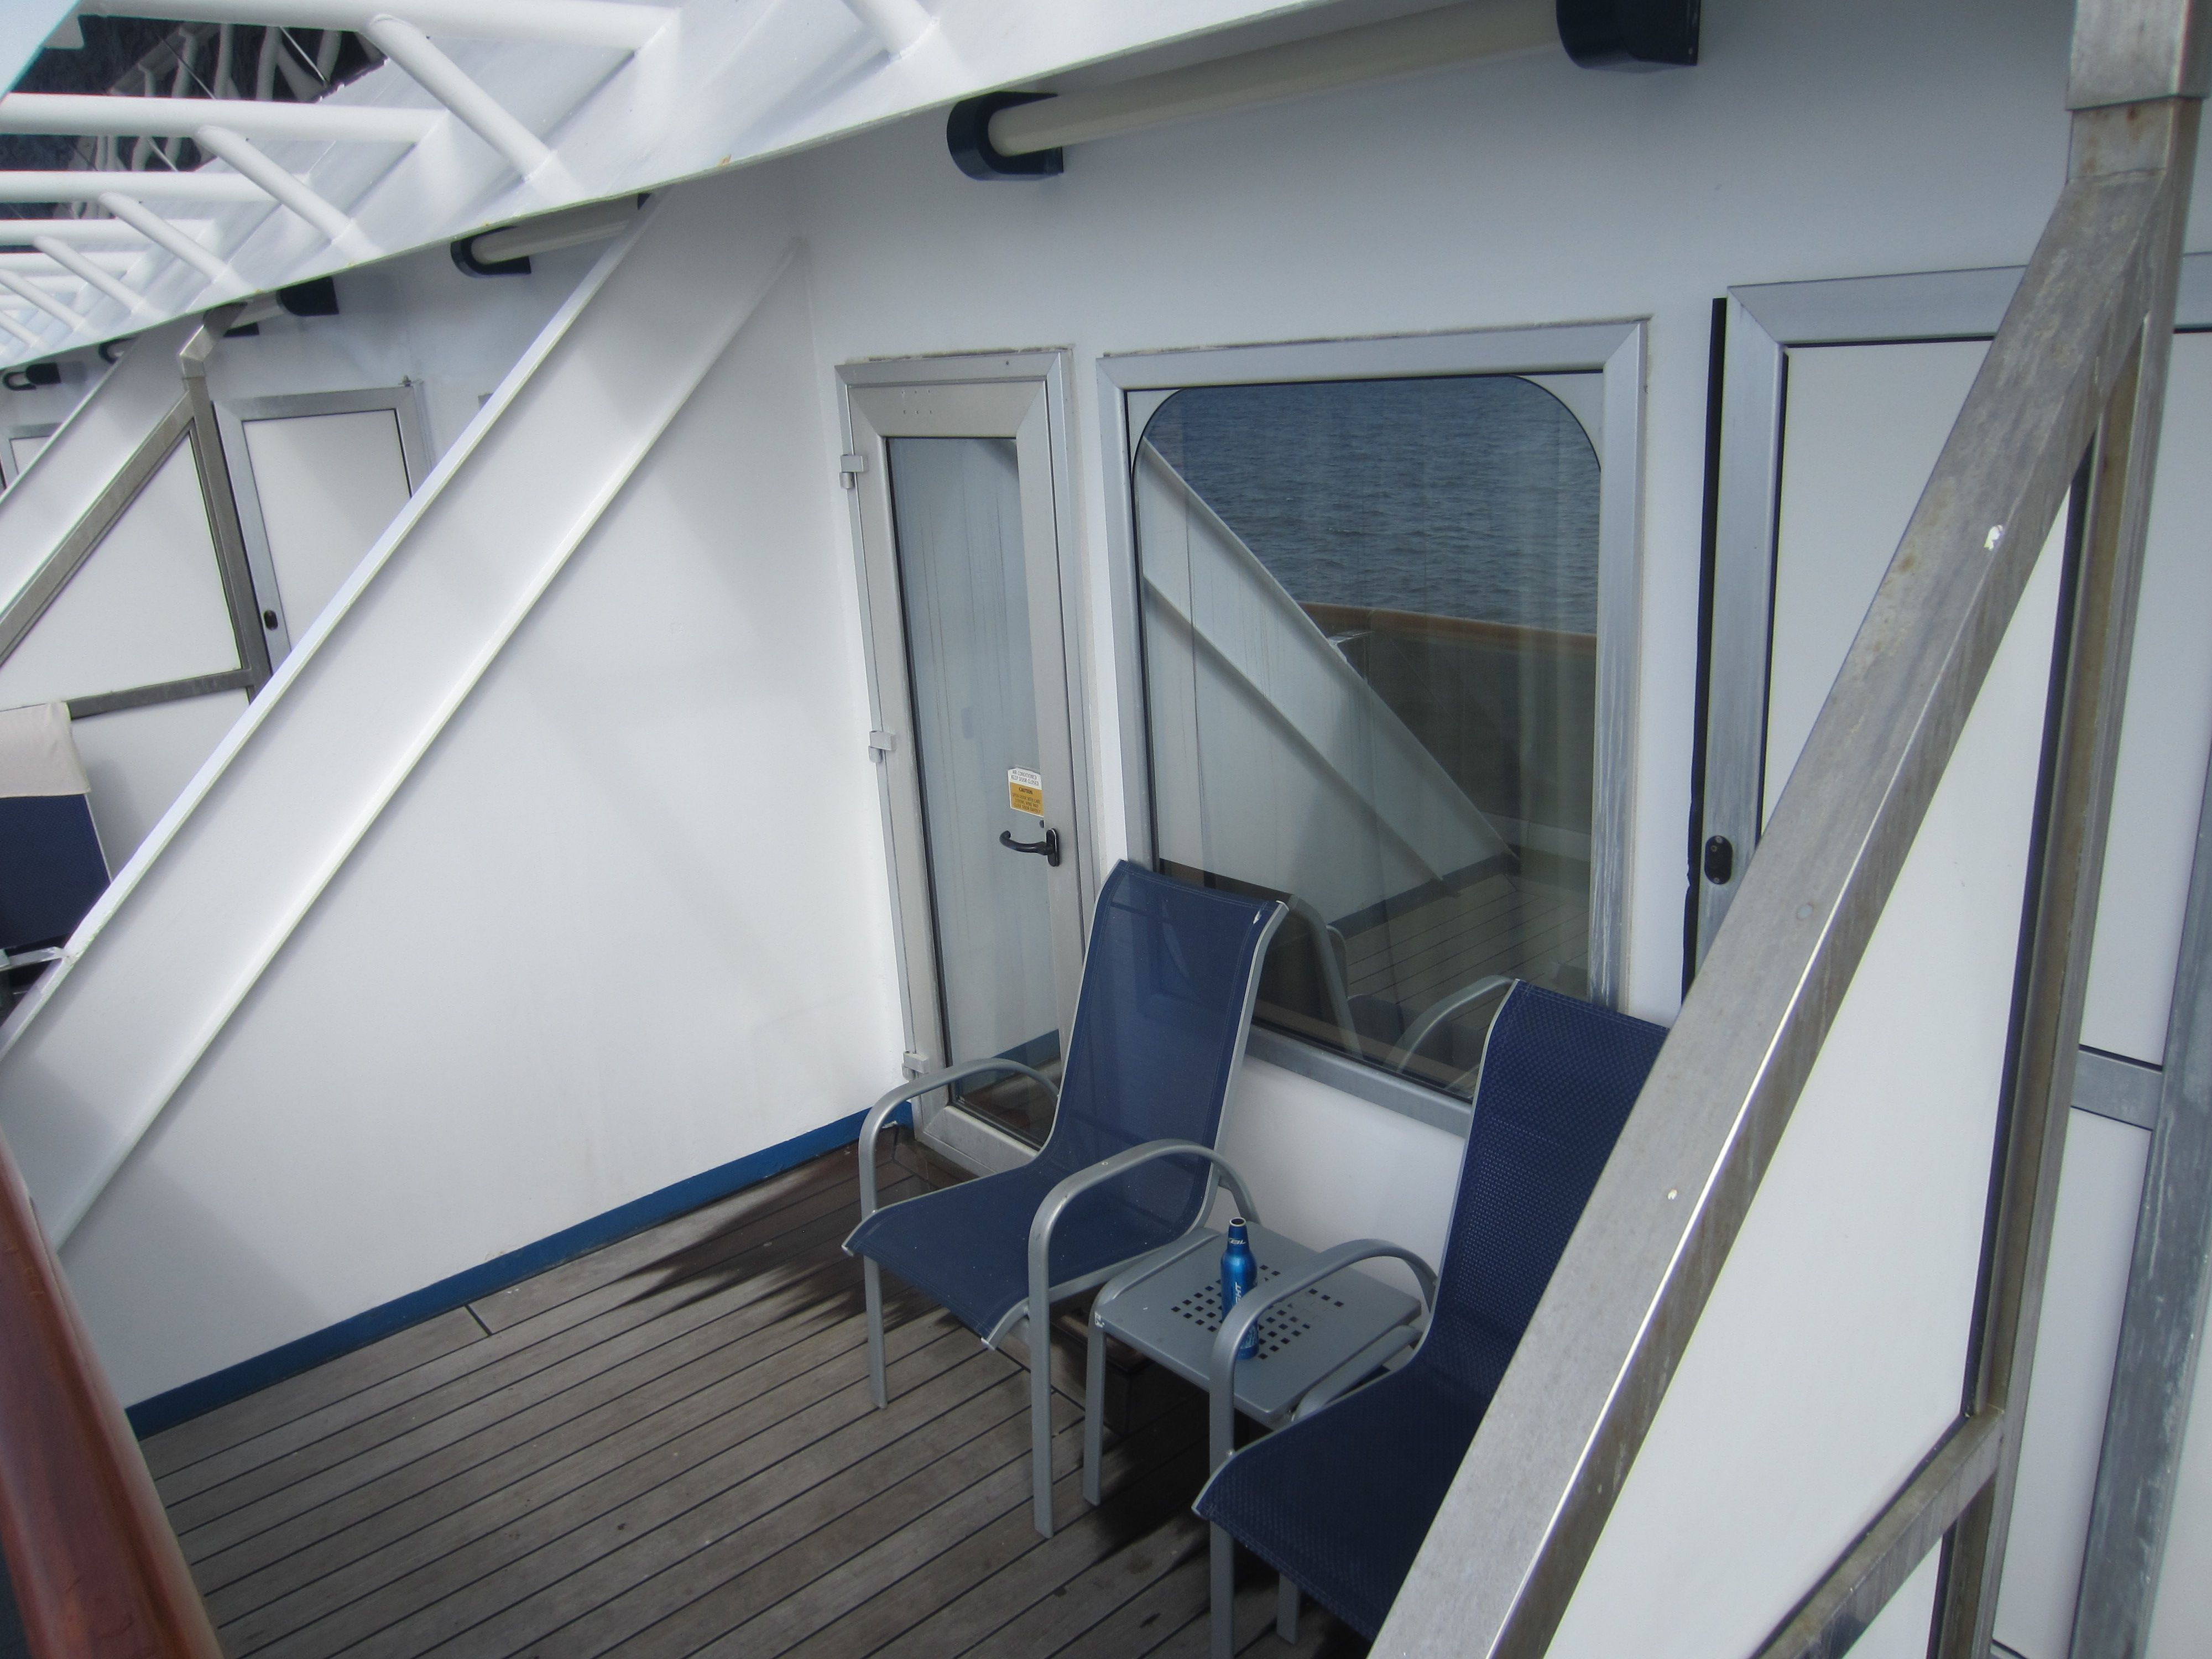 Aft Balcony With Door Open Between The Two Carnival Glory Aft - What is aft on a cruise ship